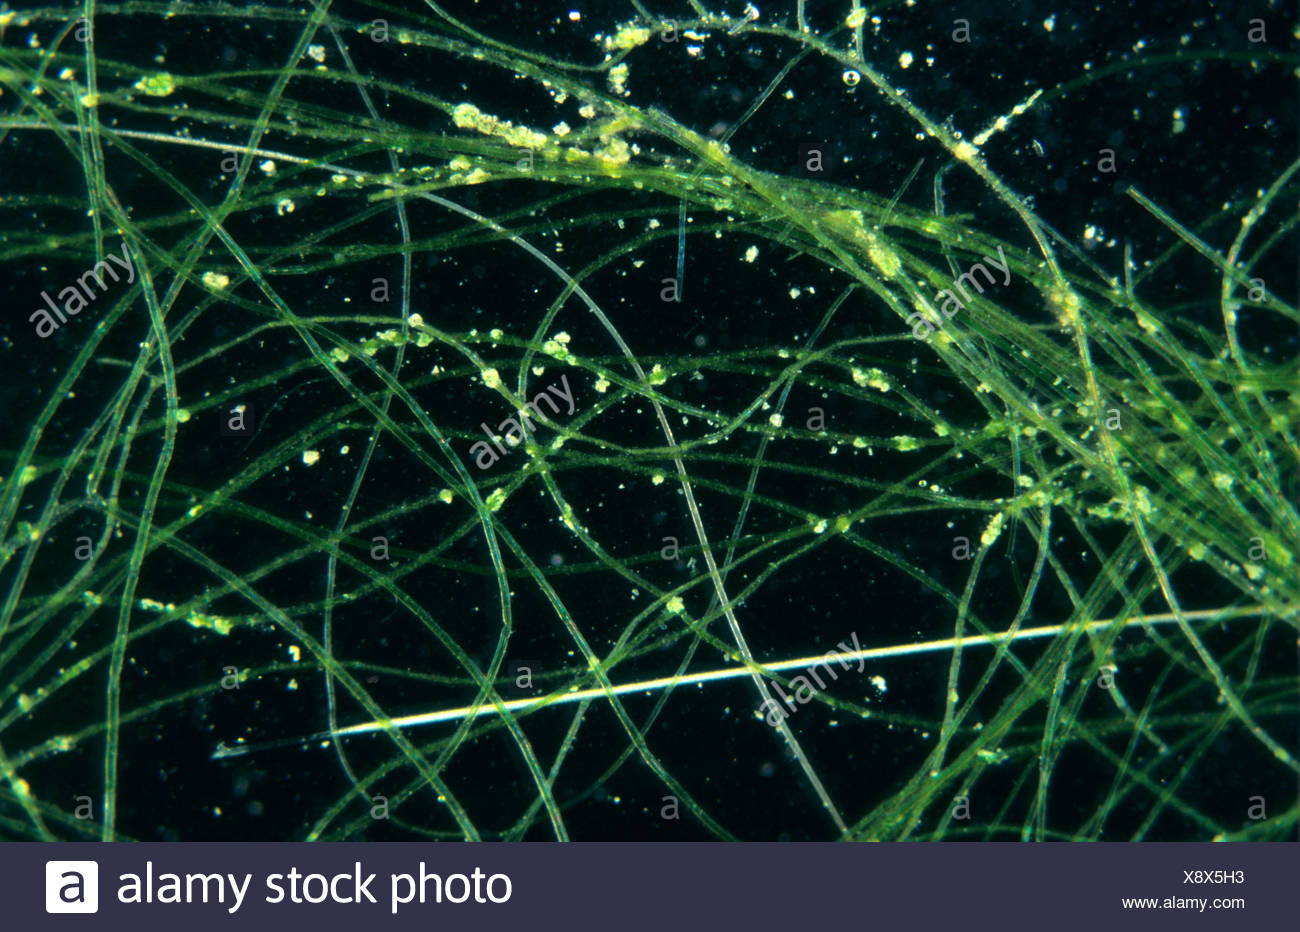 Photomicrograph of blanket weed filaments - Stock Image